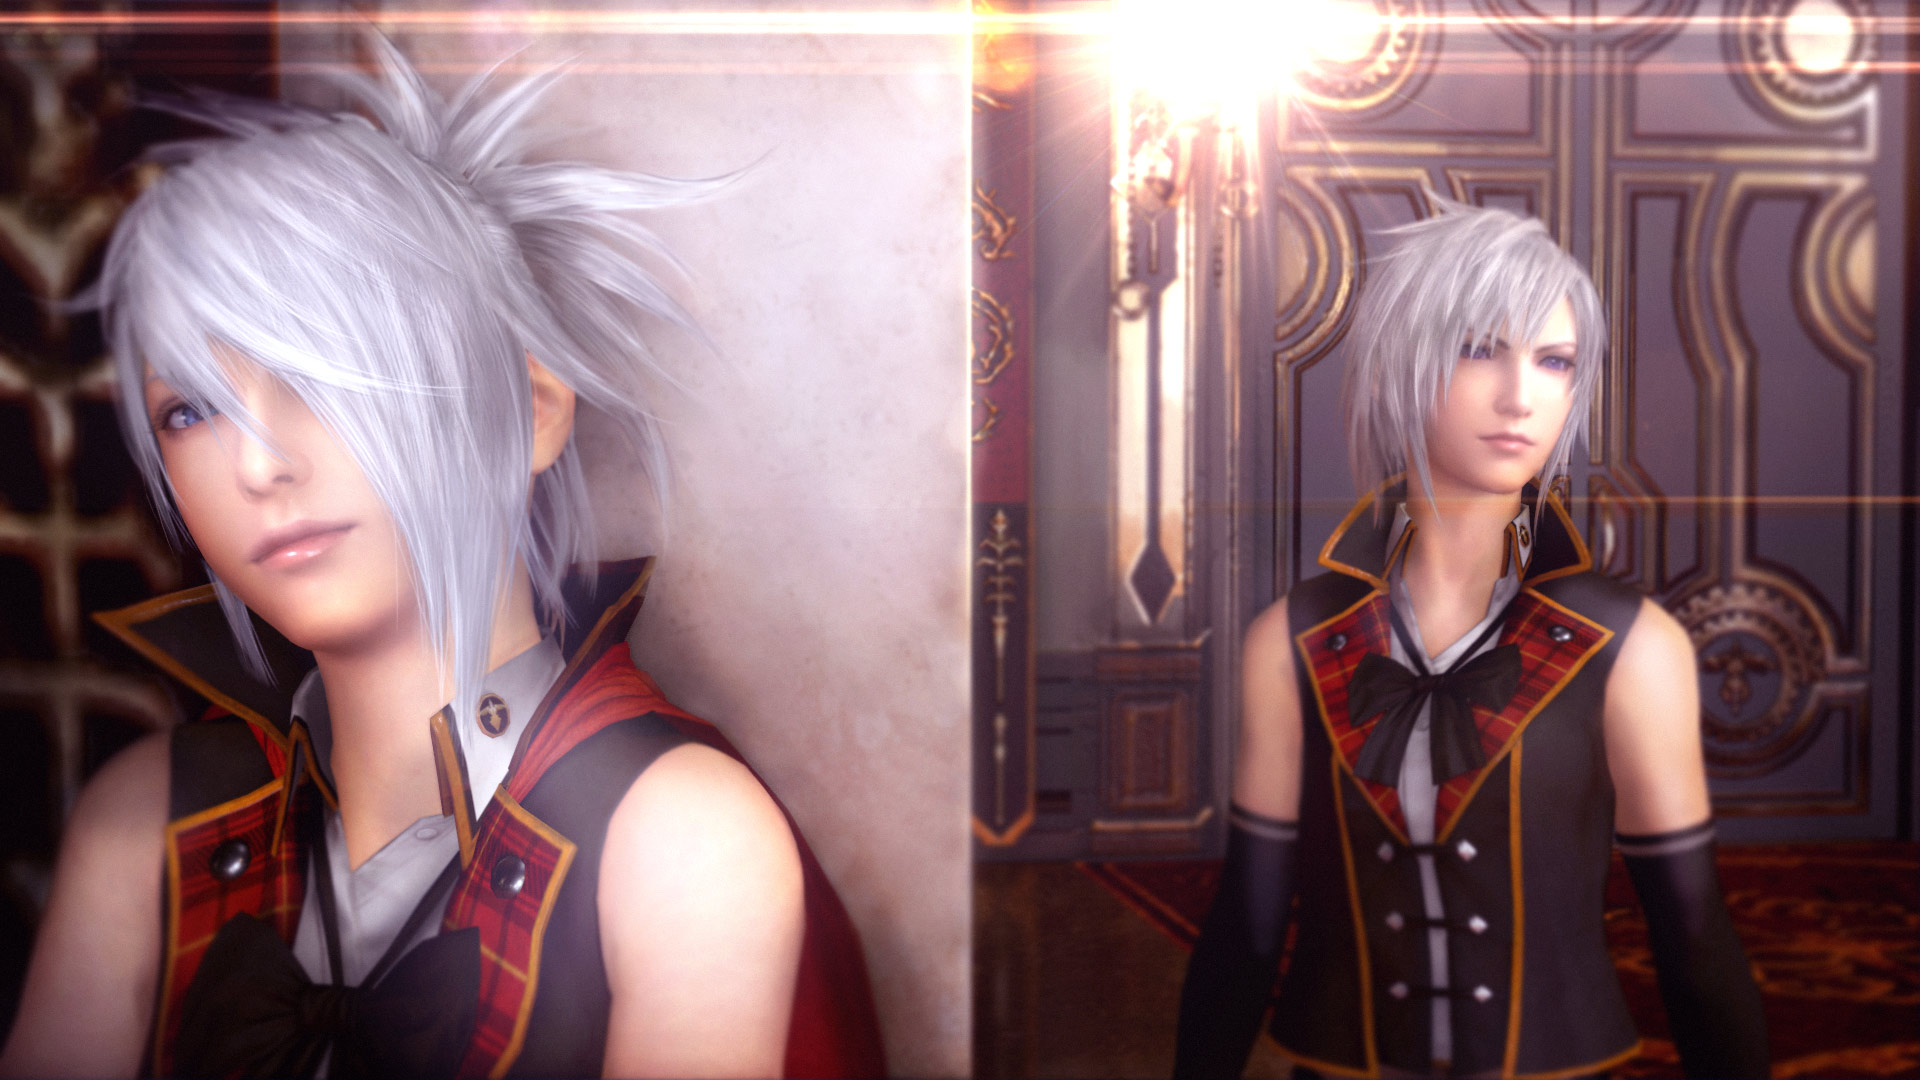 Final Fantasy Type 0 Hd Wallpaper 010 Sice And Seven Wallpapers